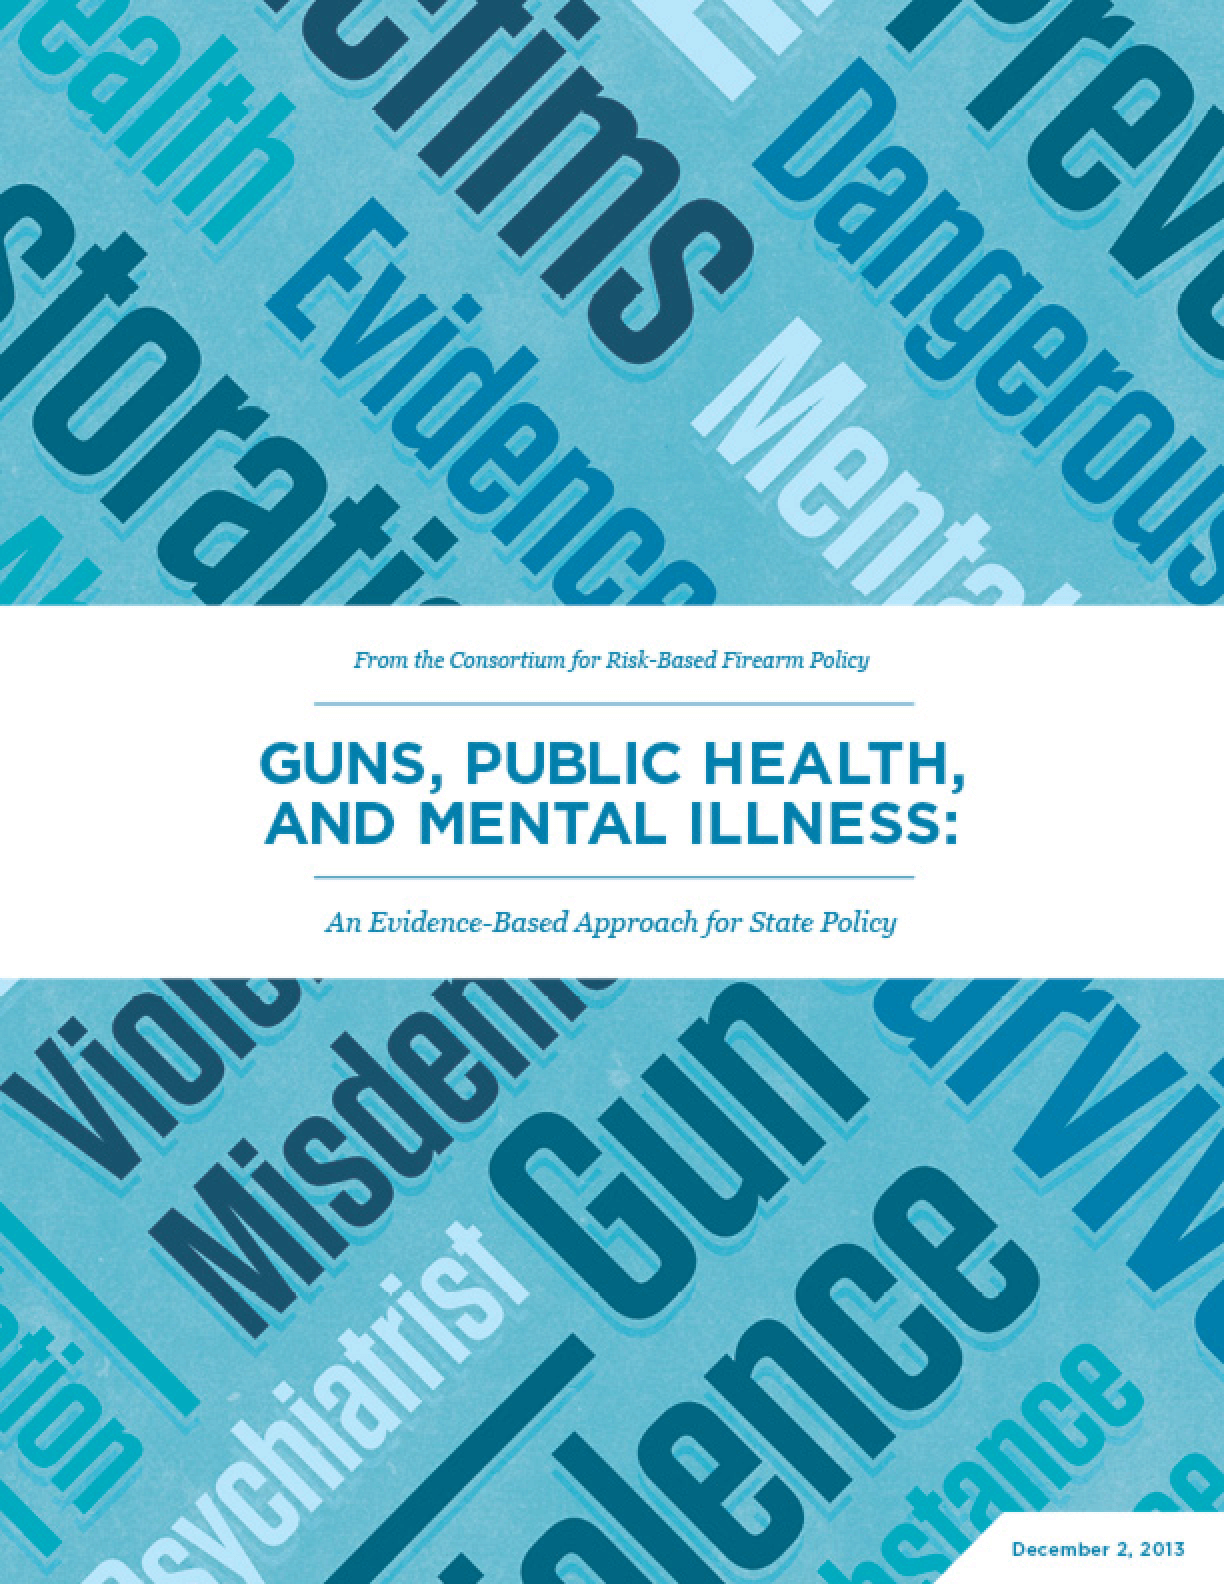 Guns, Public Health and Mental Illness: An Evidence-Based Approach for State Policy